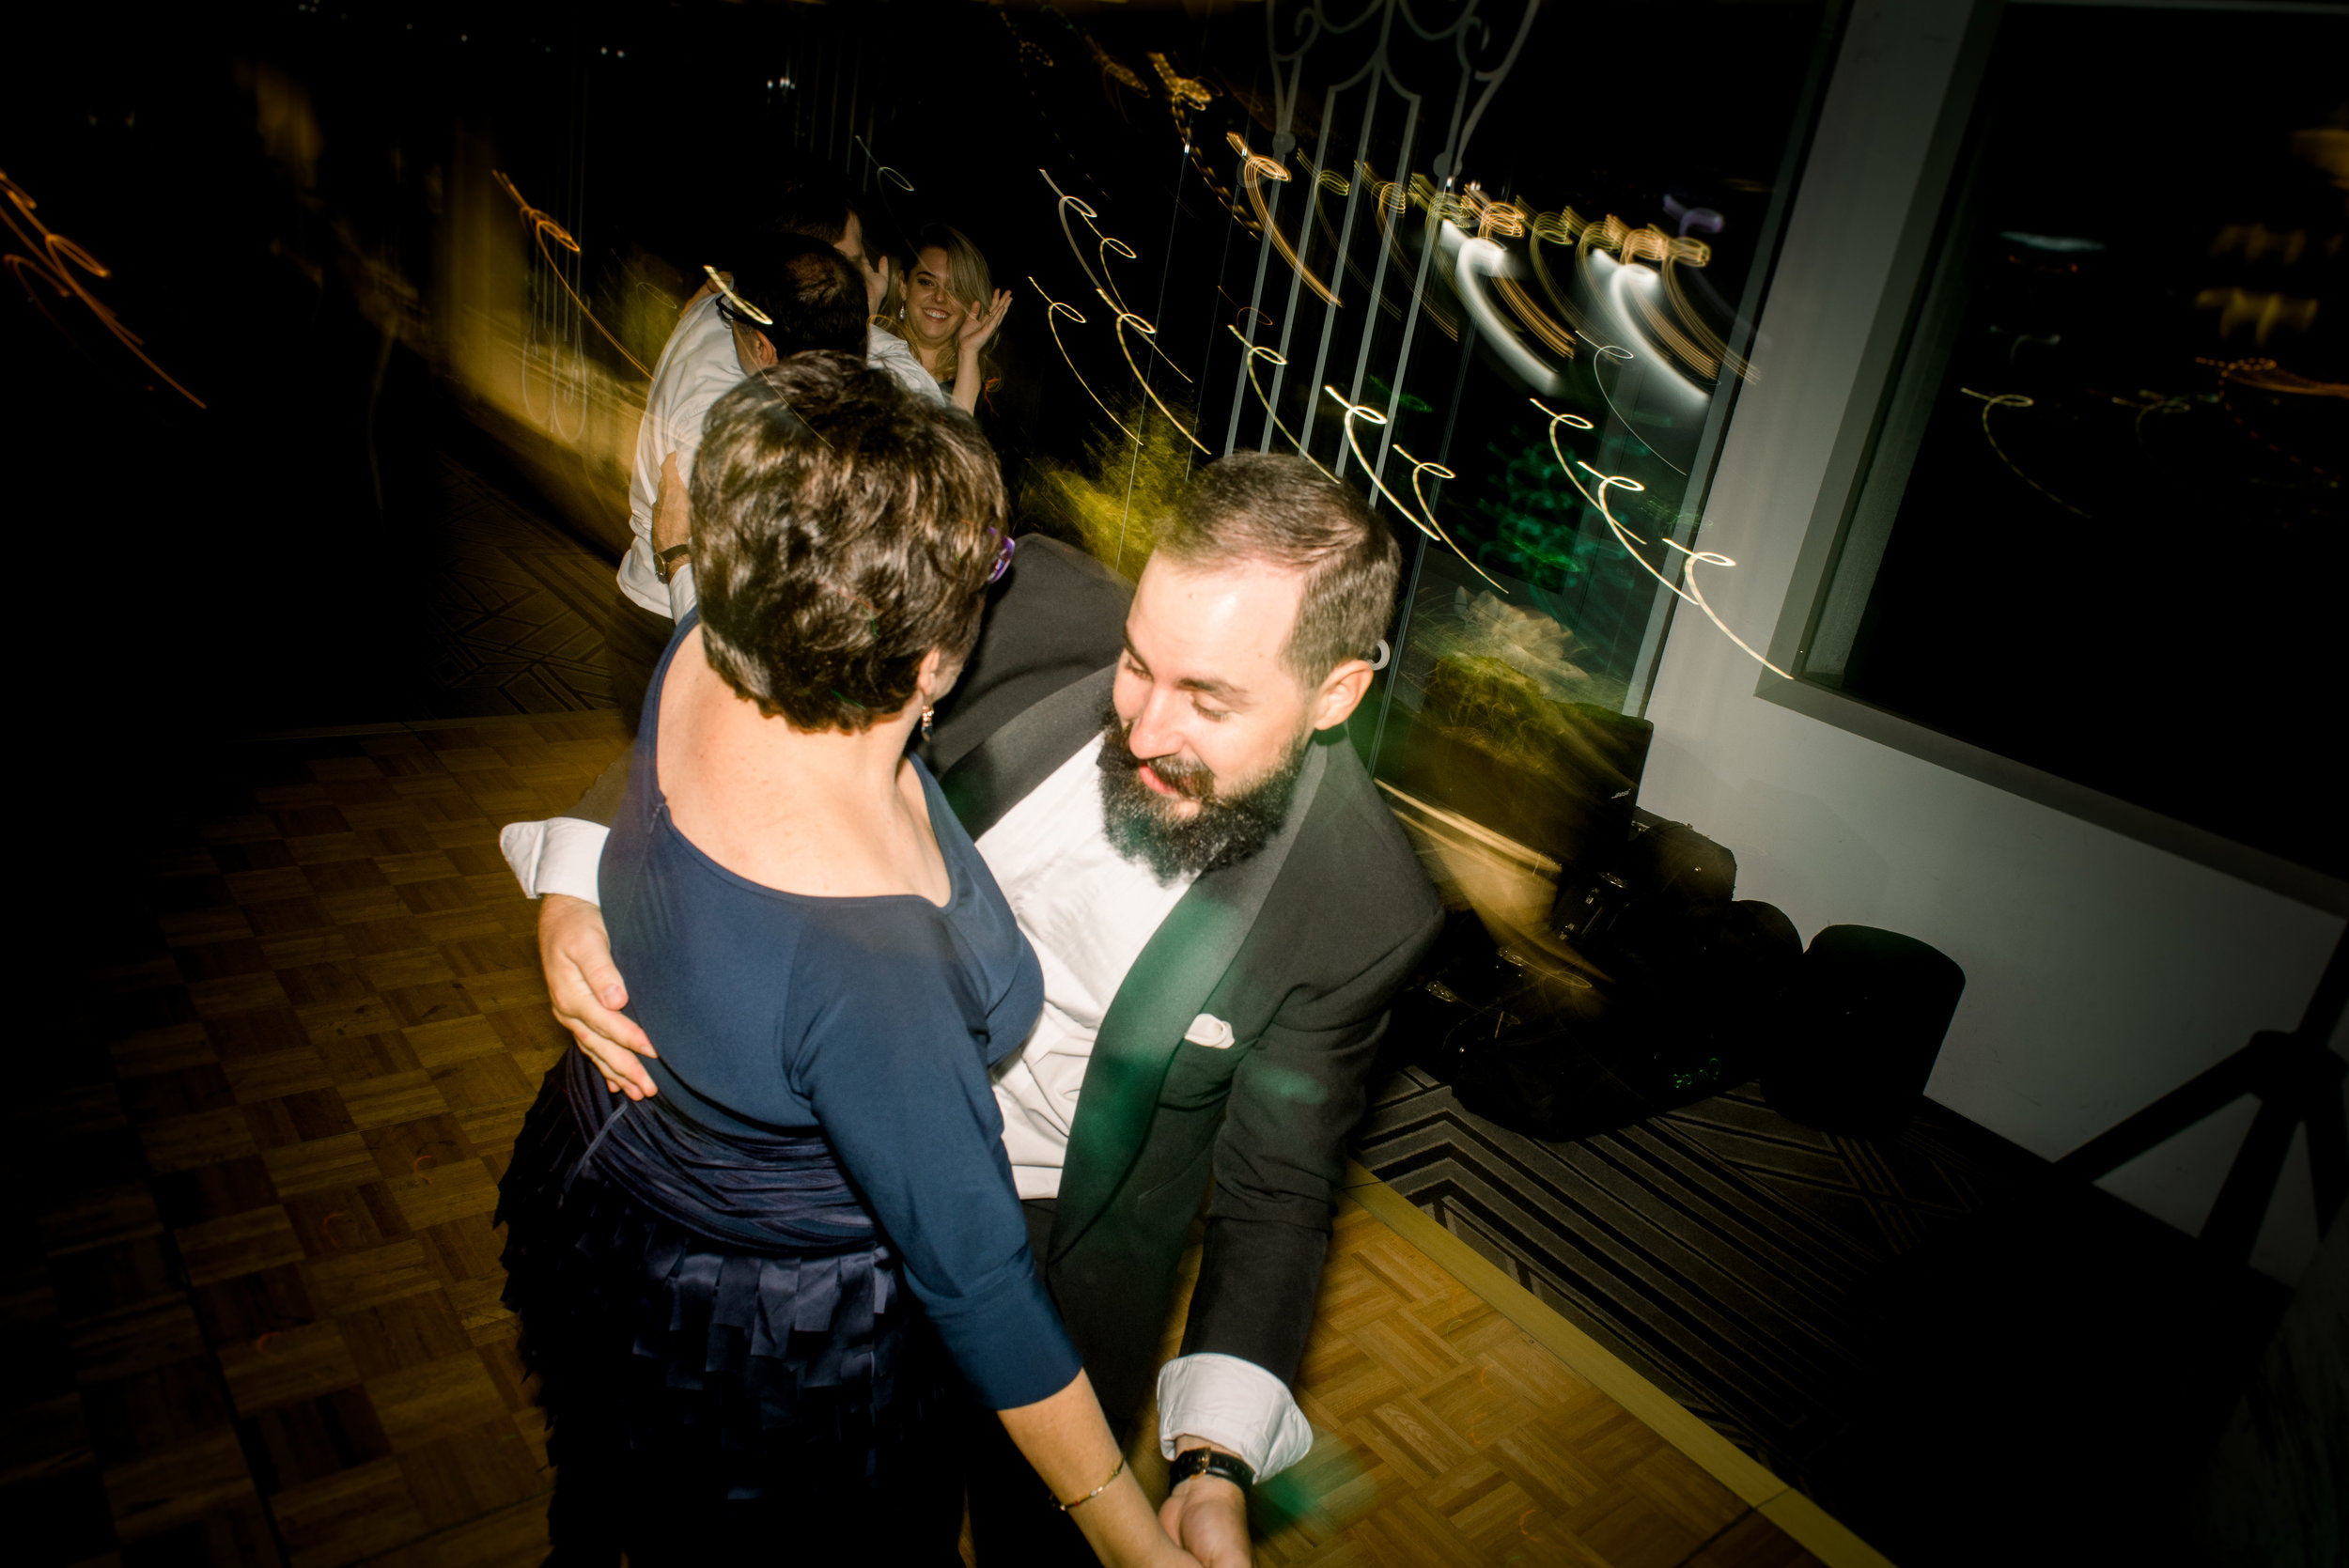 black-bird-brisbane-wedding-photography-film-photography-beautiful-reception-dance-candid-tweed-coast-wedding-210.jpg